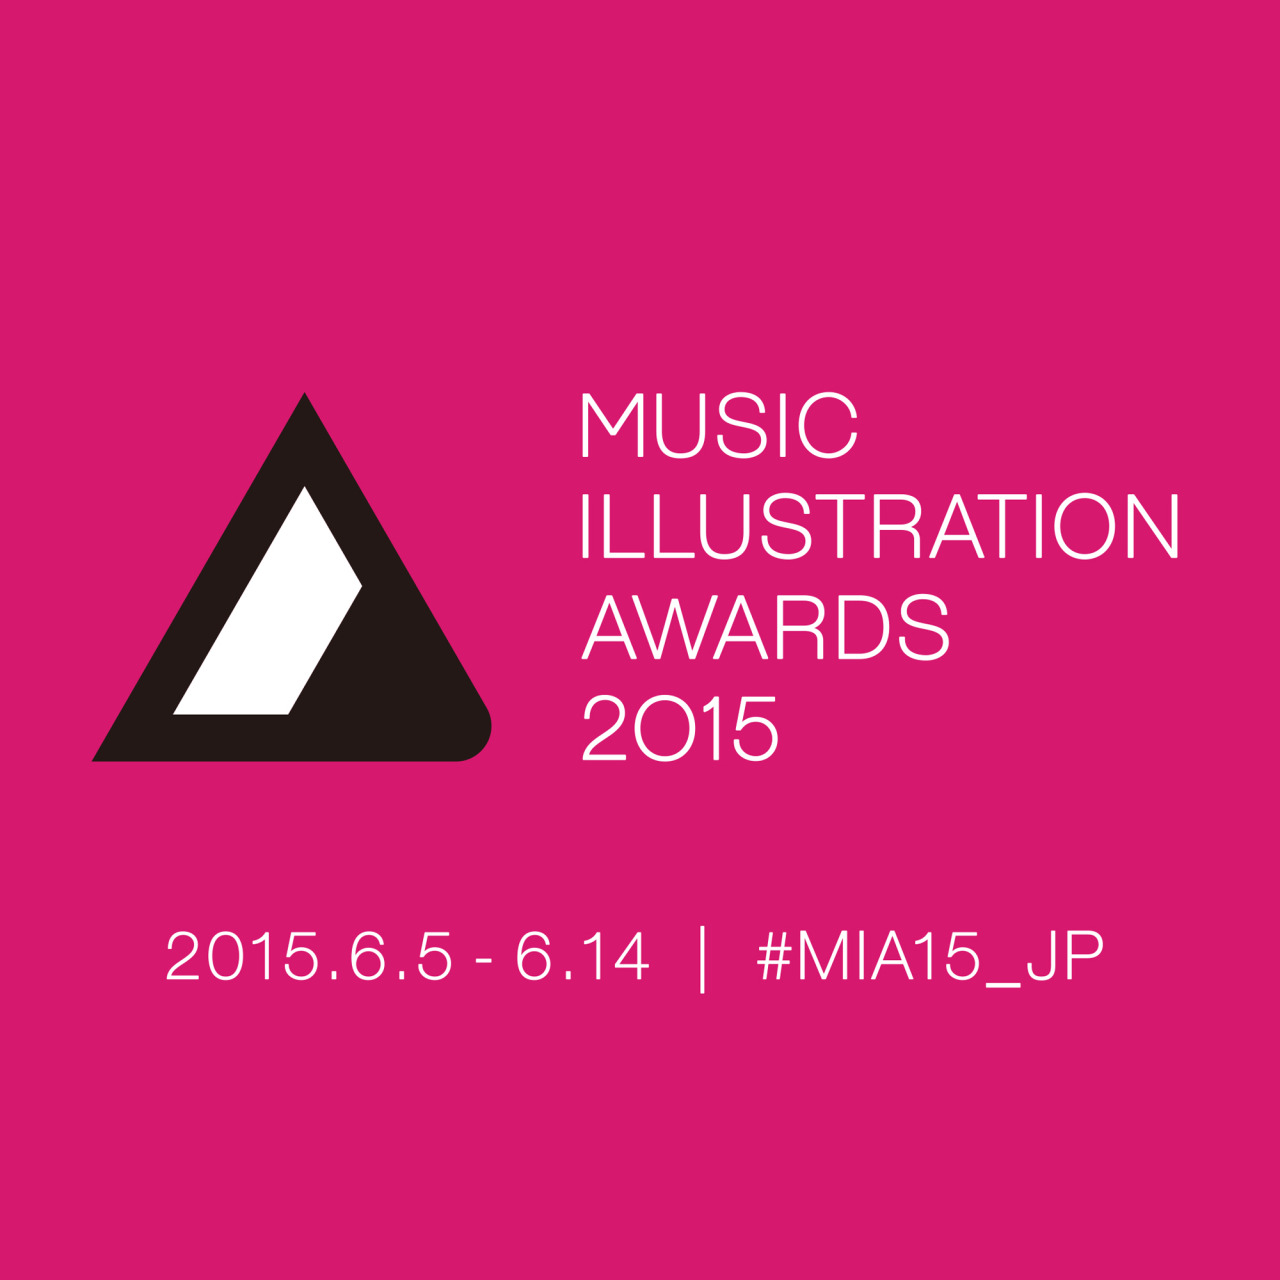 MUSIC ILLUSTRATION AWARDS 2015_b0229770_2162327.jpg